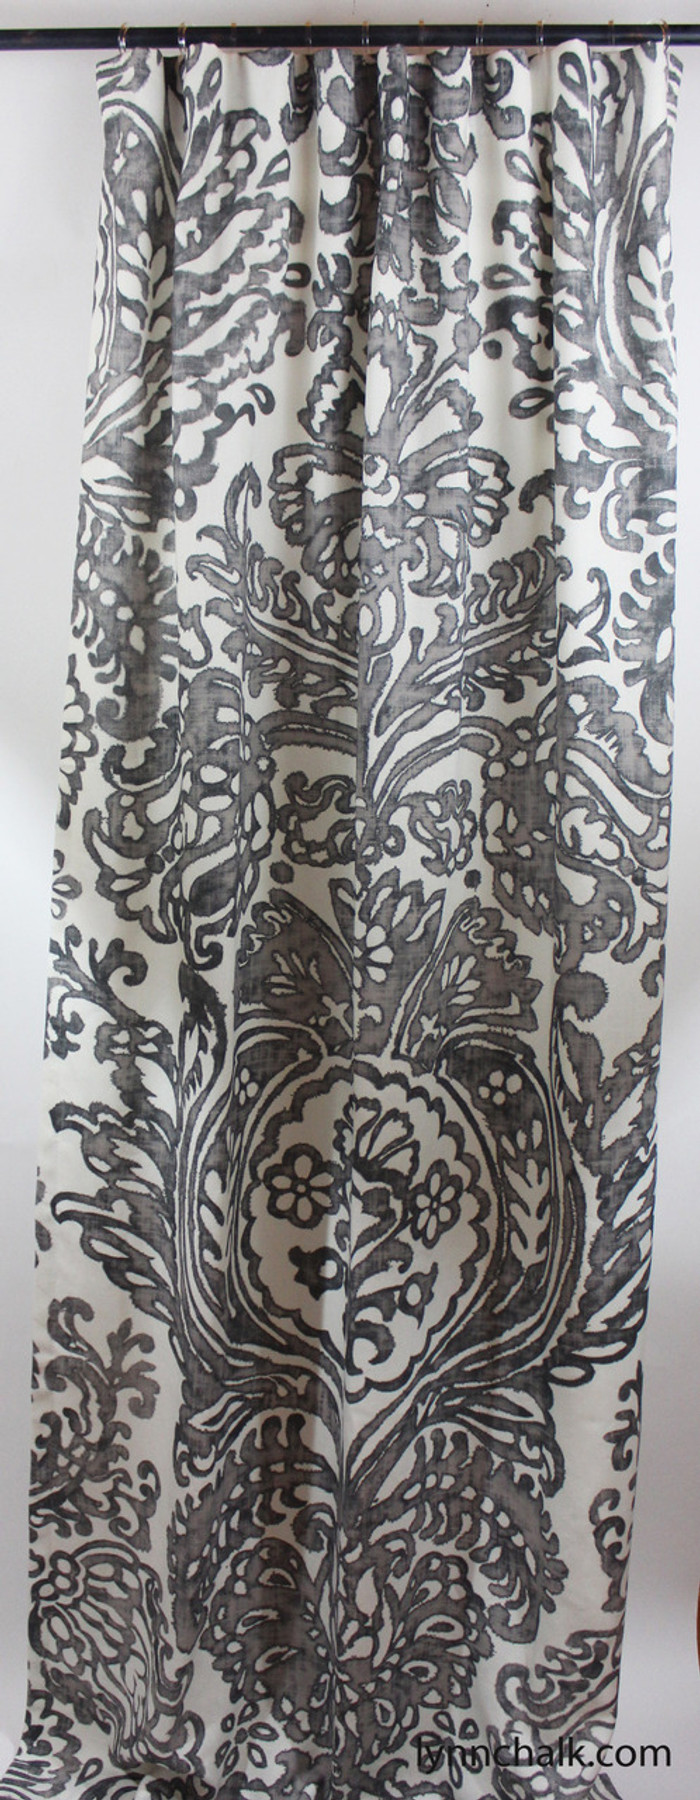 Custom Drapes in Schumacher Tremezzo Damask in Graphite